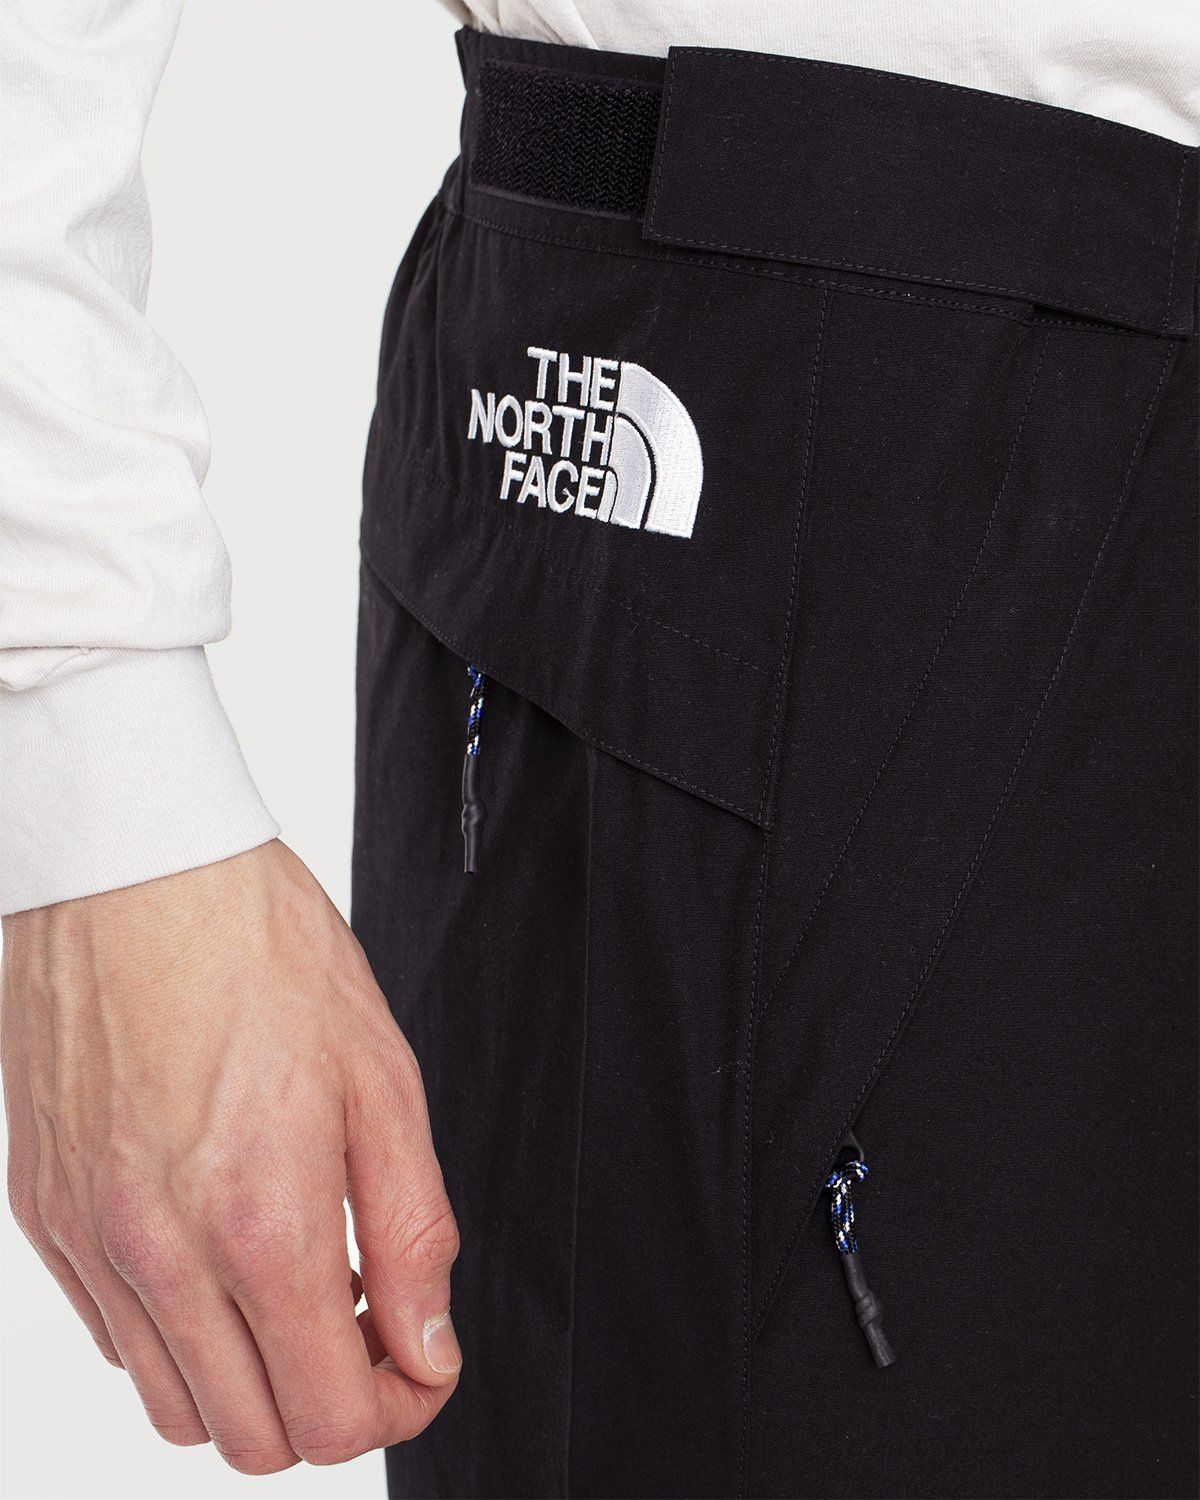 The North Face Black Series - Spectra® Shorts Black - Image 3